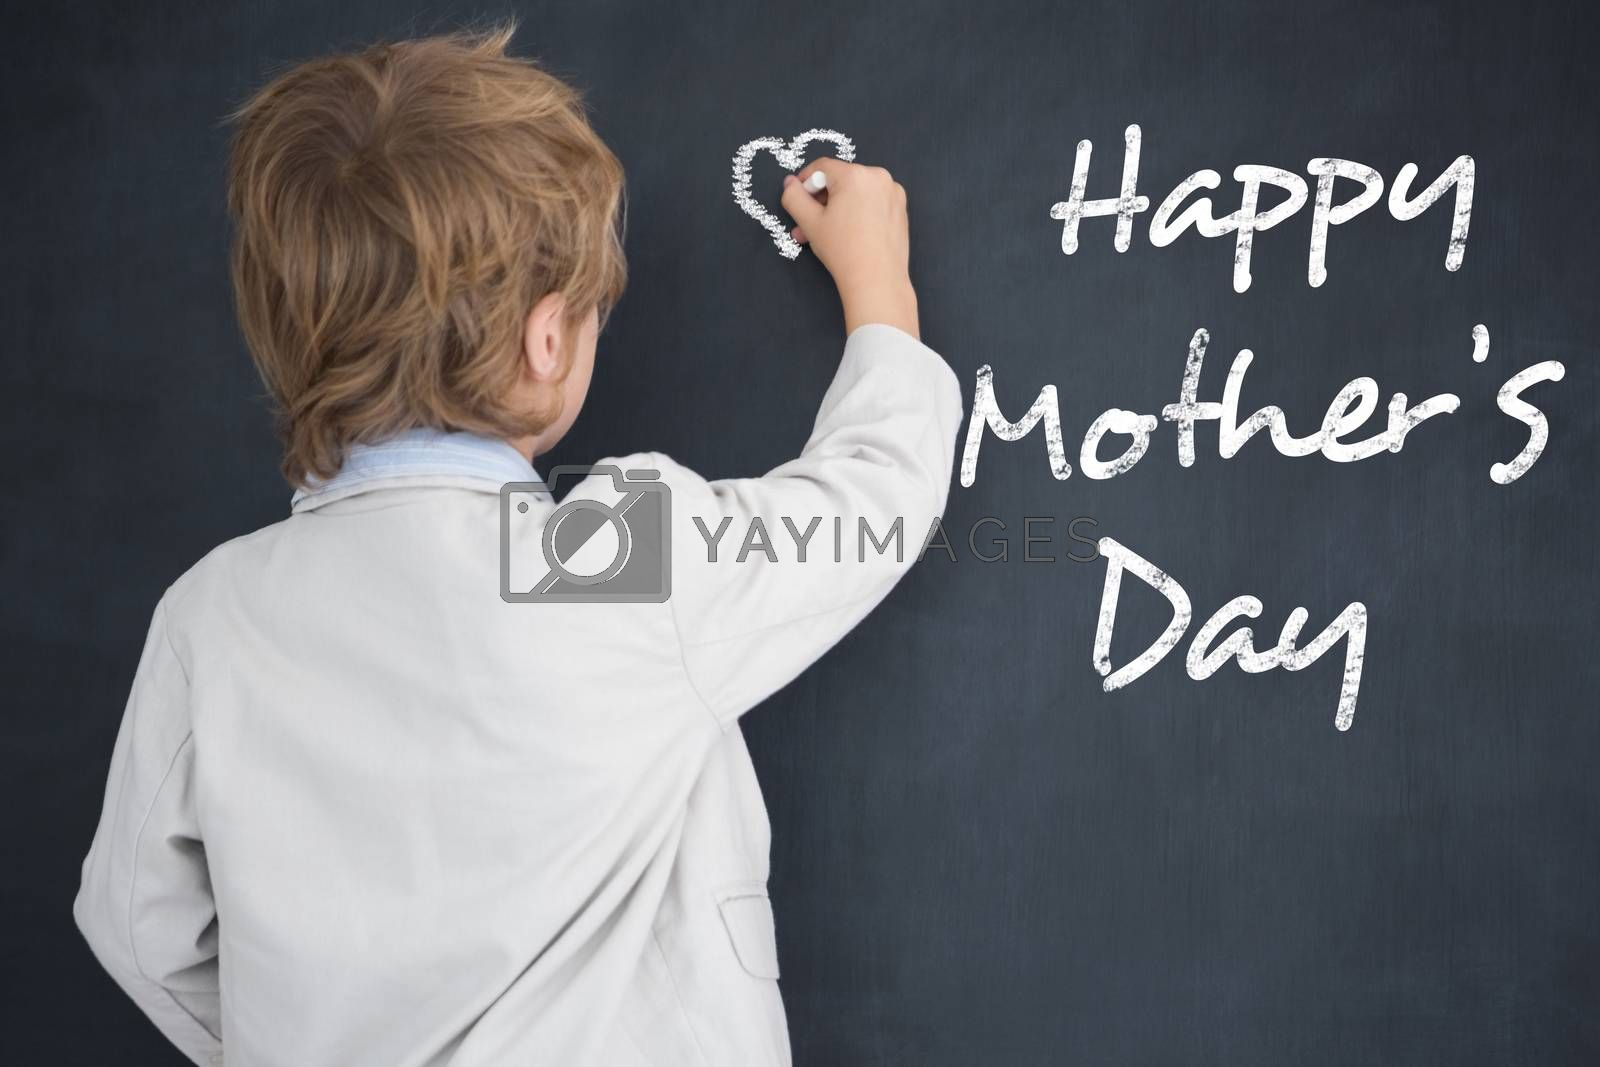 Cute pupil writing on board against black background